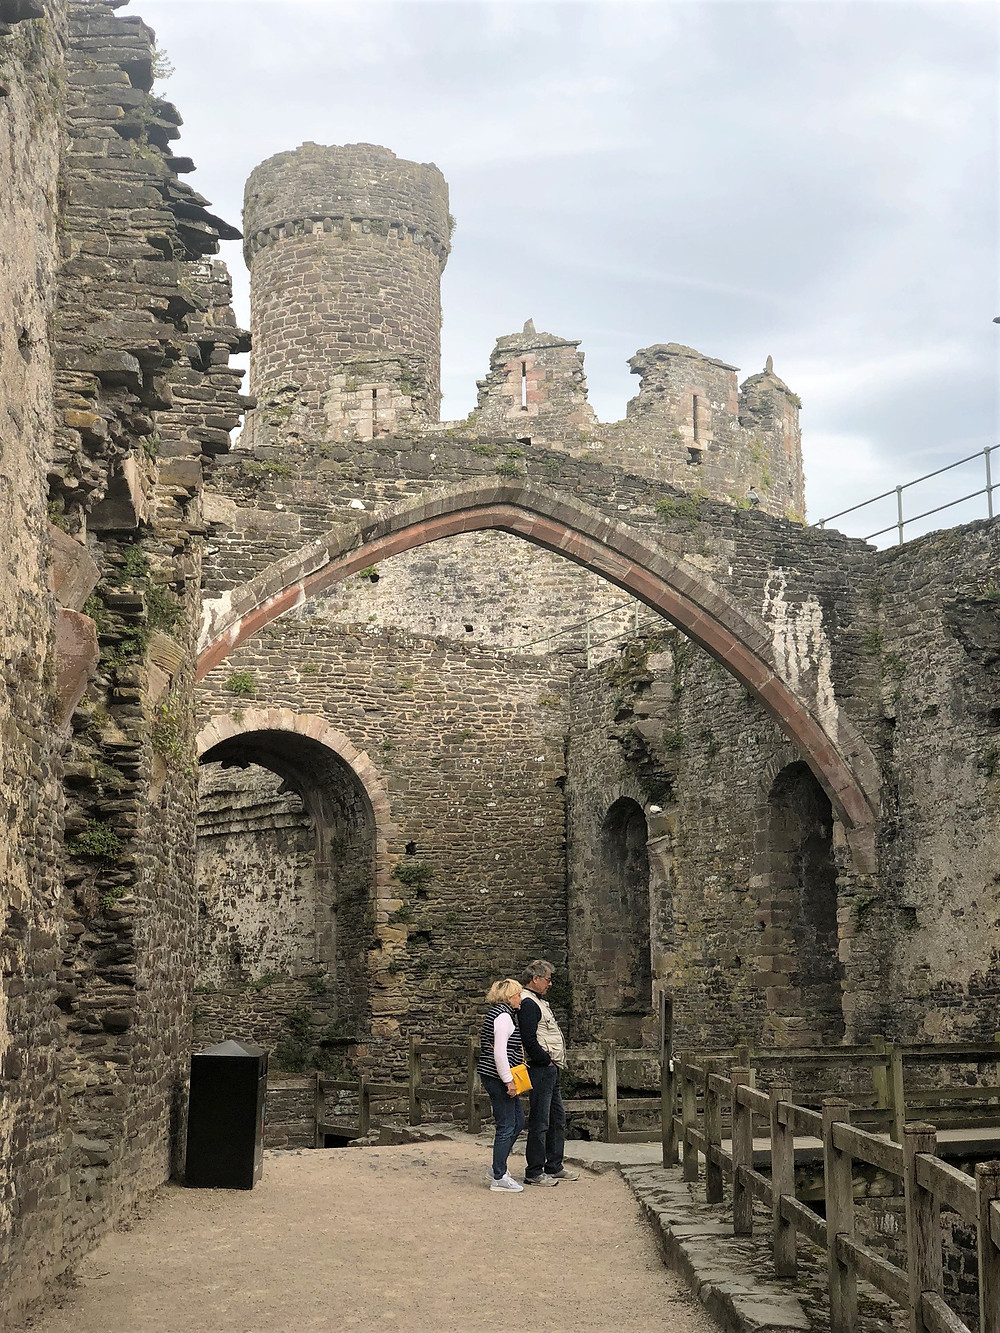 The central arch of Conwy Castle Great Hall was over 100 feet long